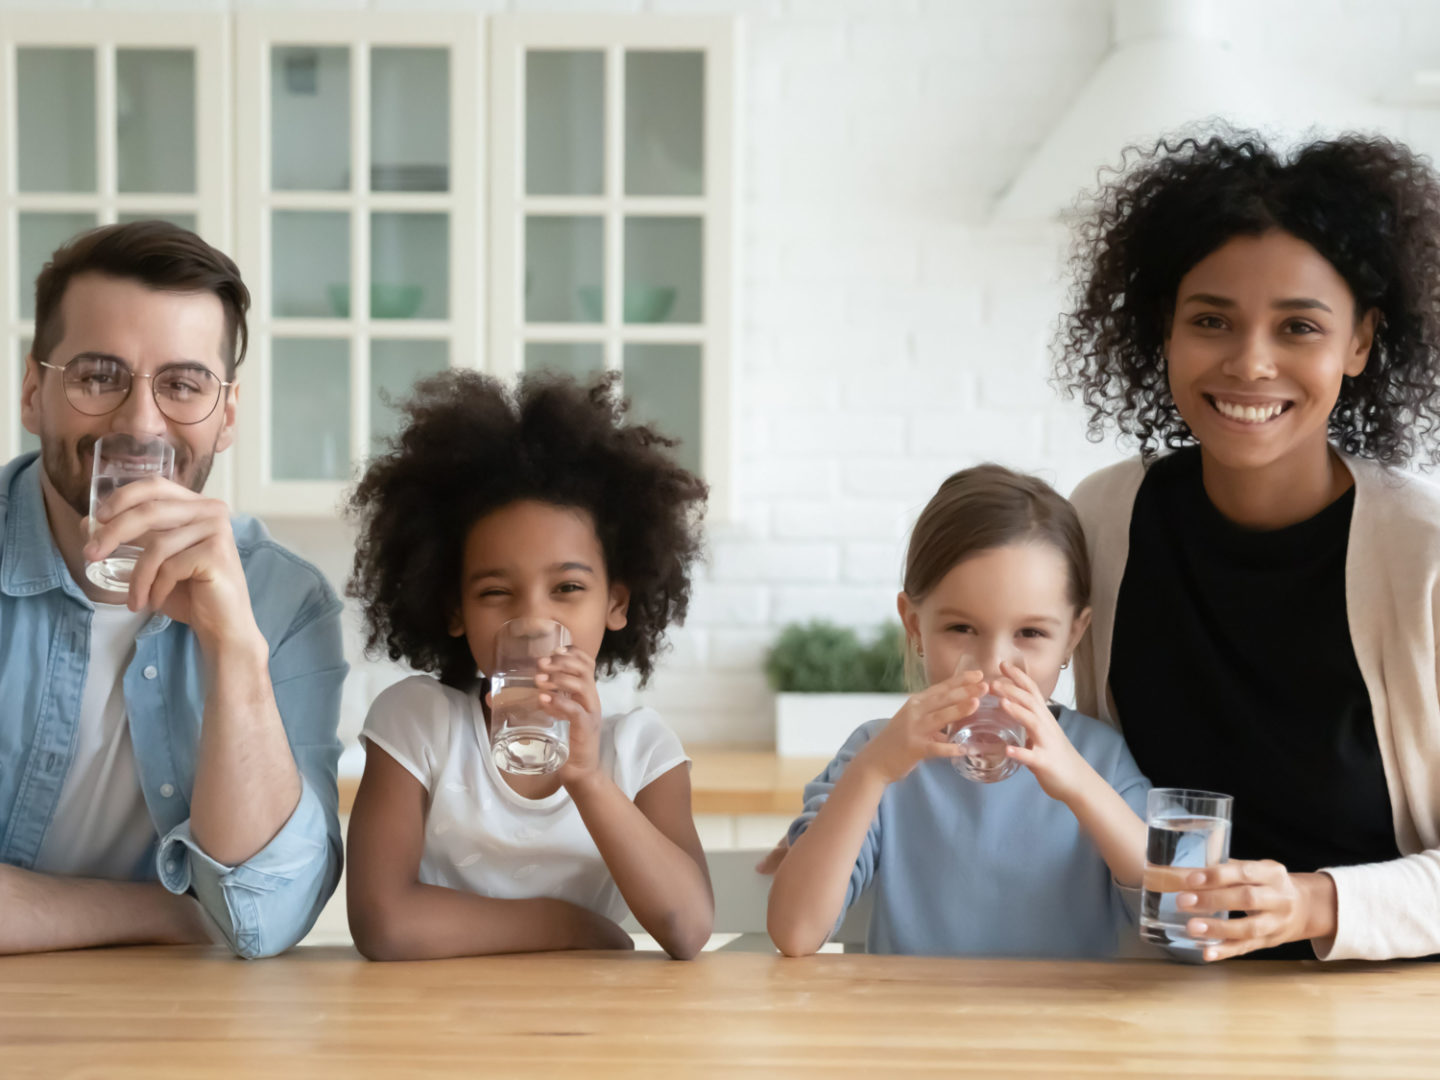 Family drinking water in kitchen - Water Filters, Reverse Osmosis and Water Treatment Systems | NSF International